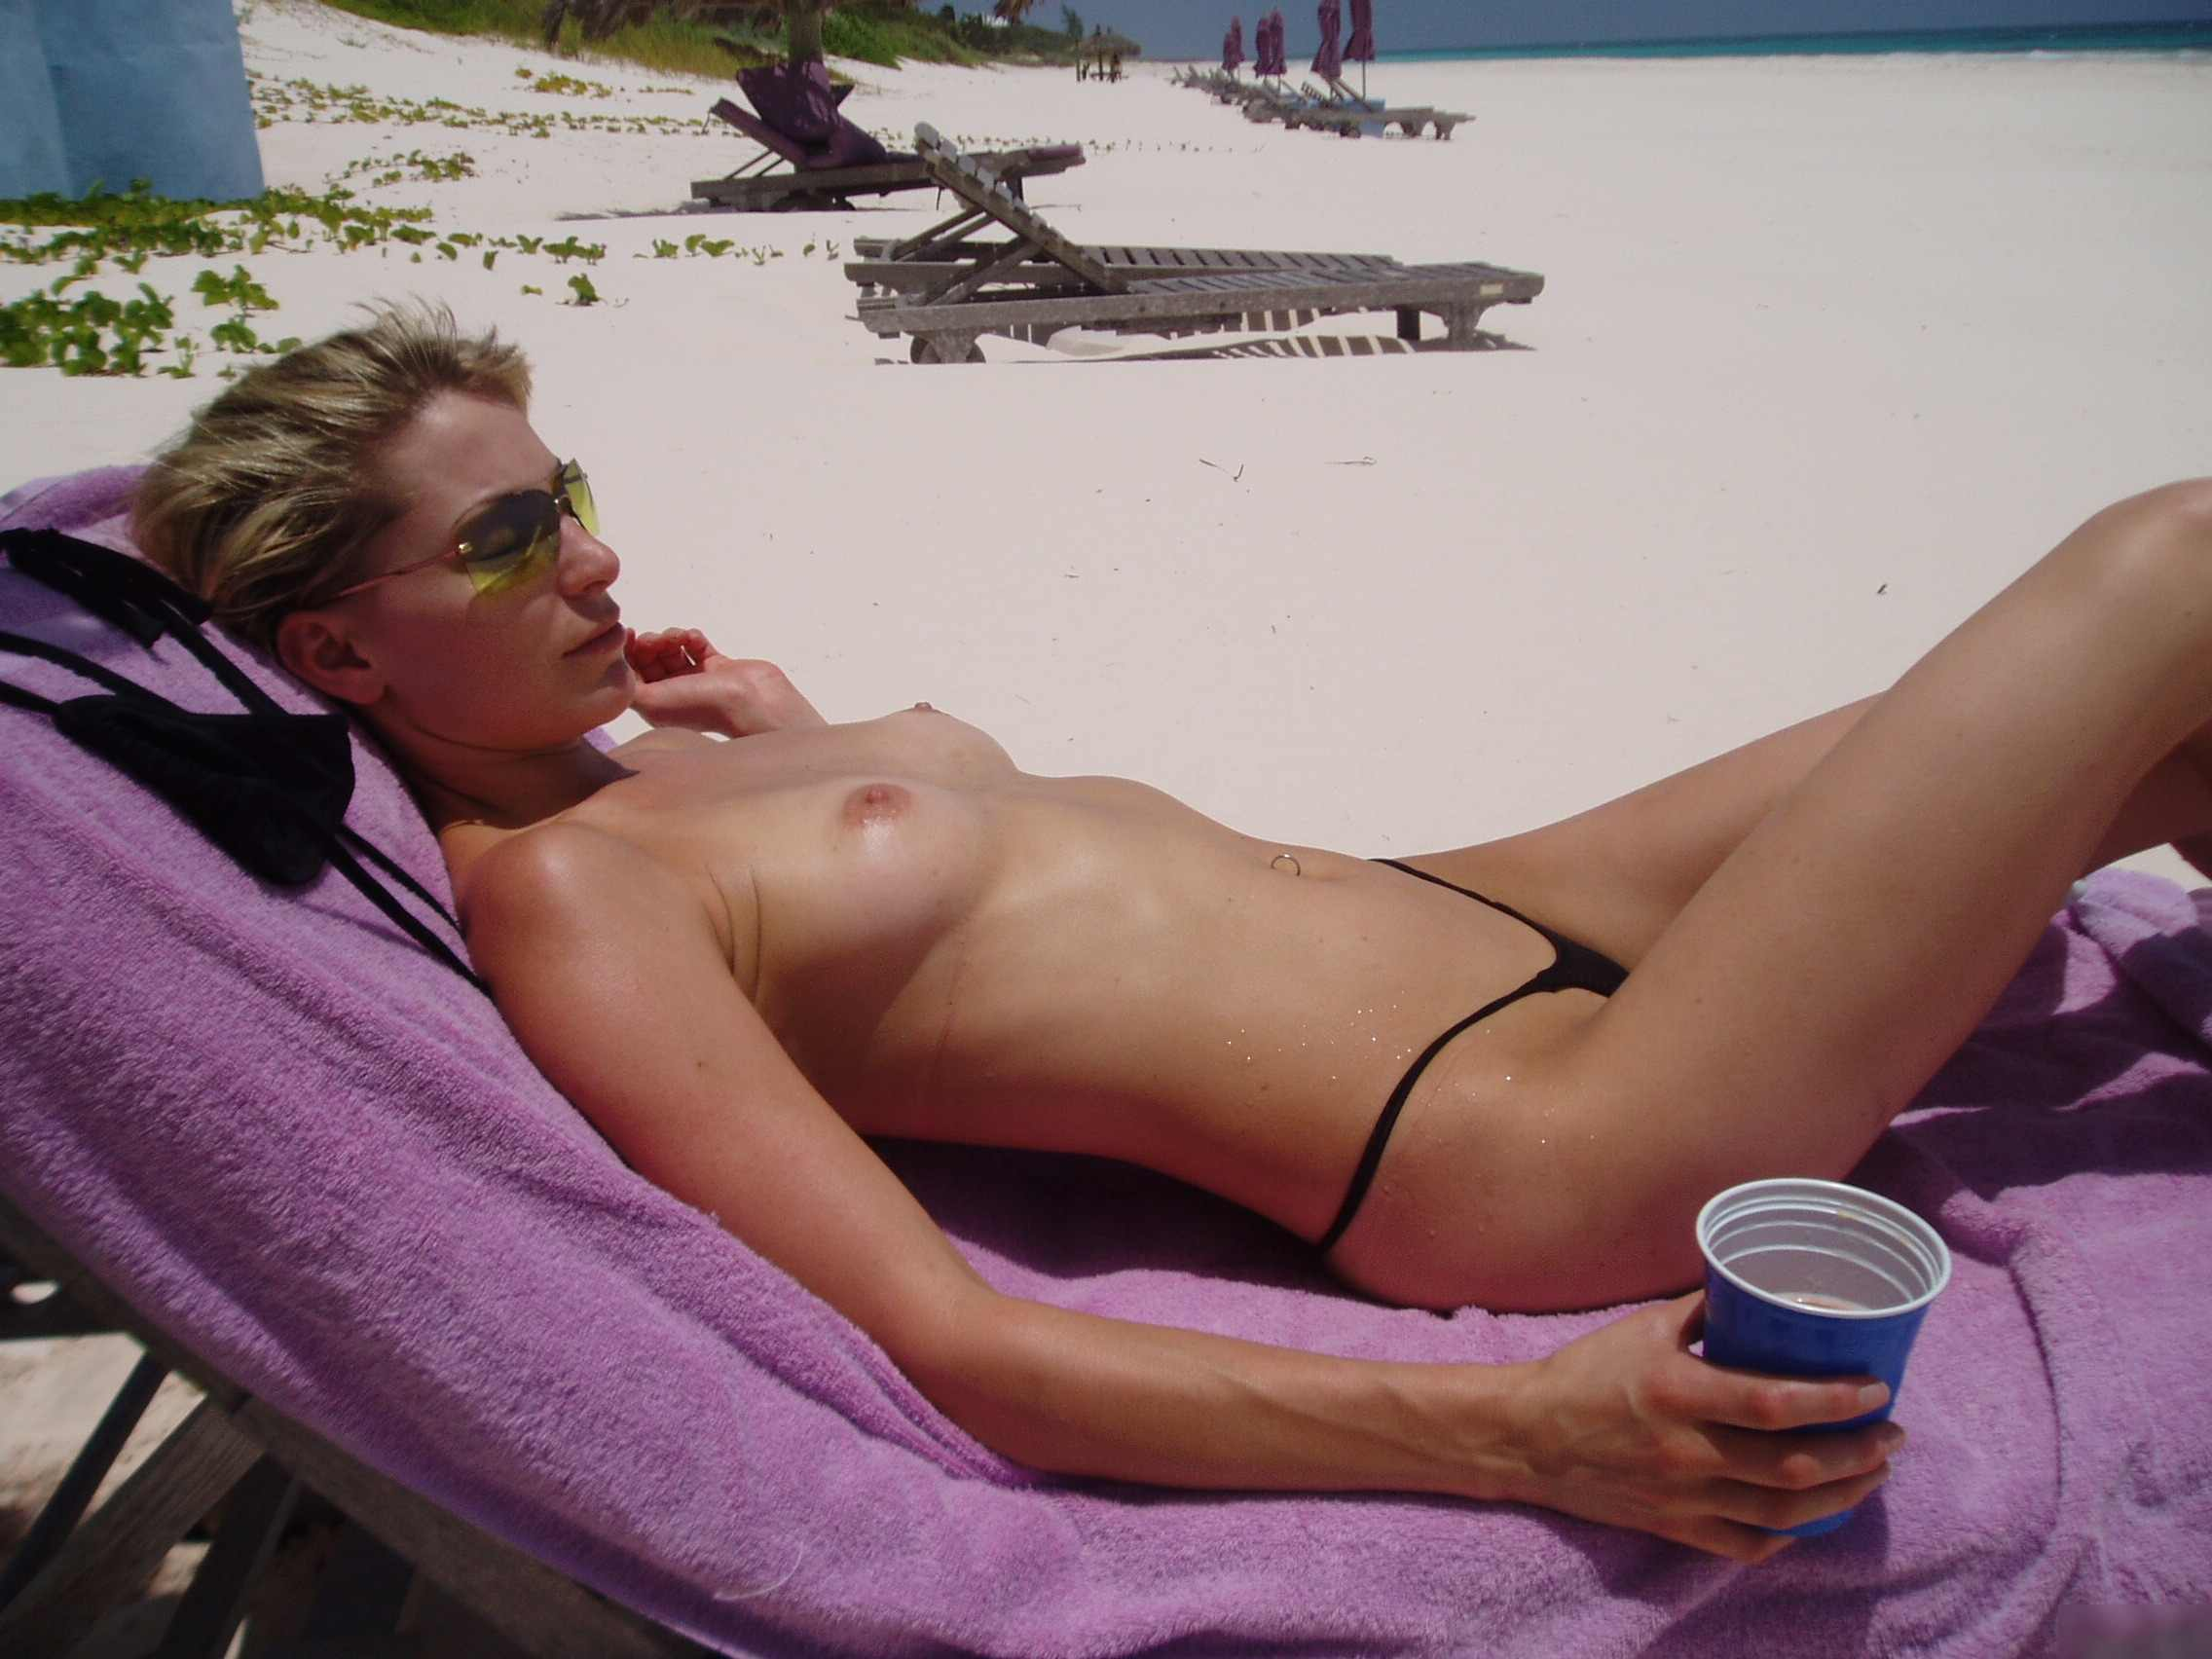 Topless classy lady enjoying a sunny day